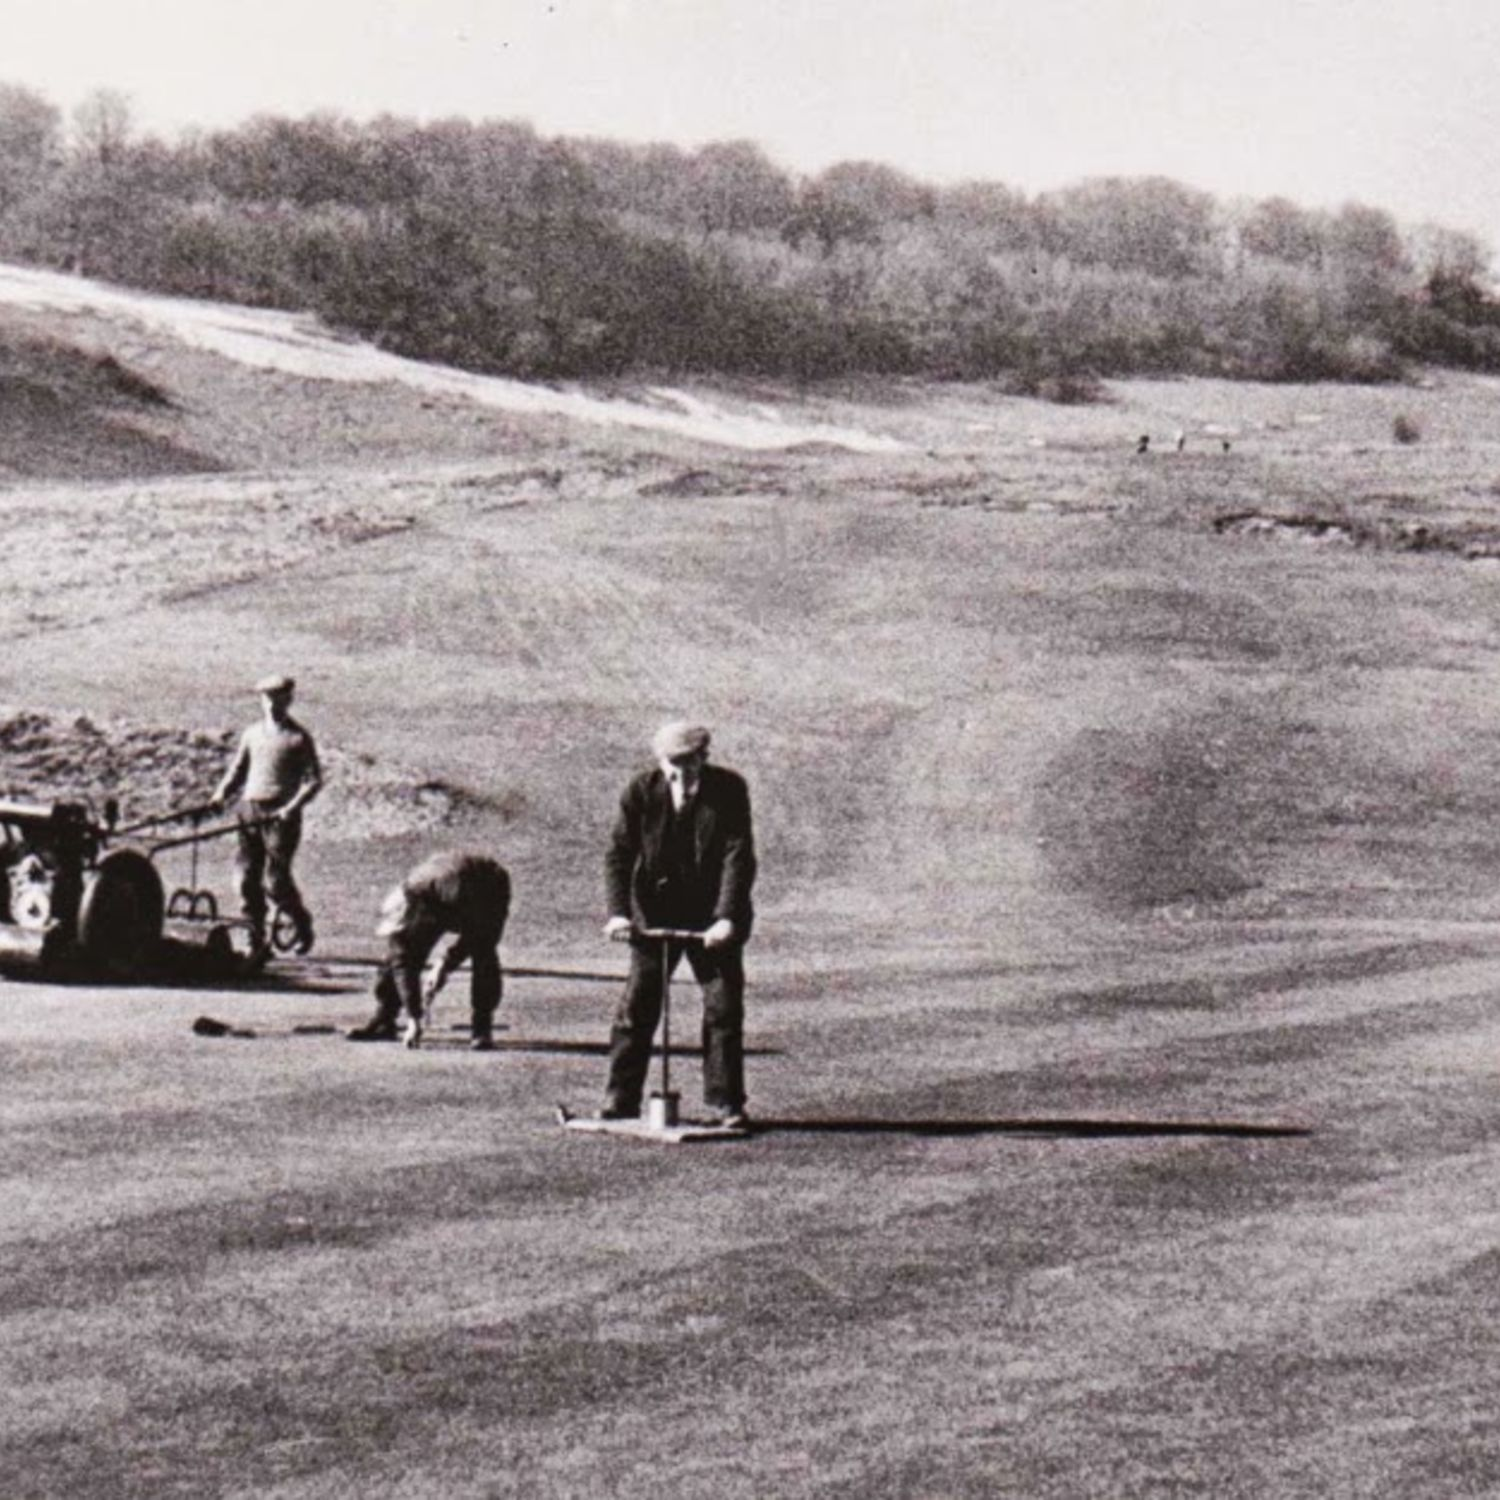 Fred Pratt cutting a new hole on the 12th, while Bill Denyer is working the Ransome overgreen mower.